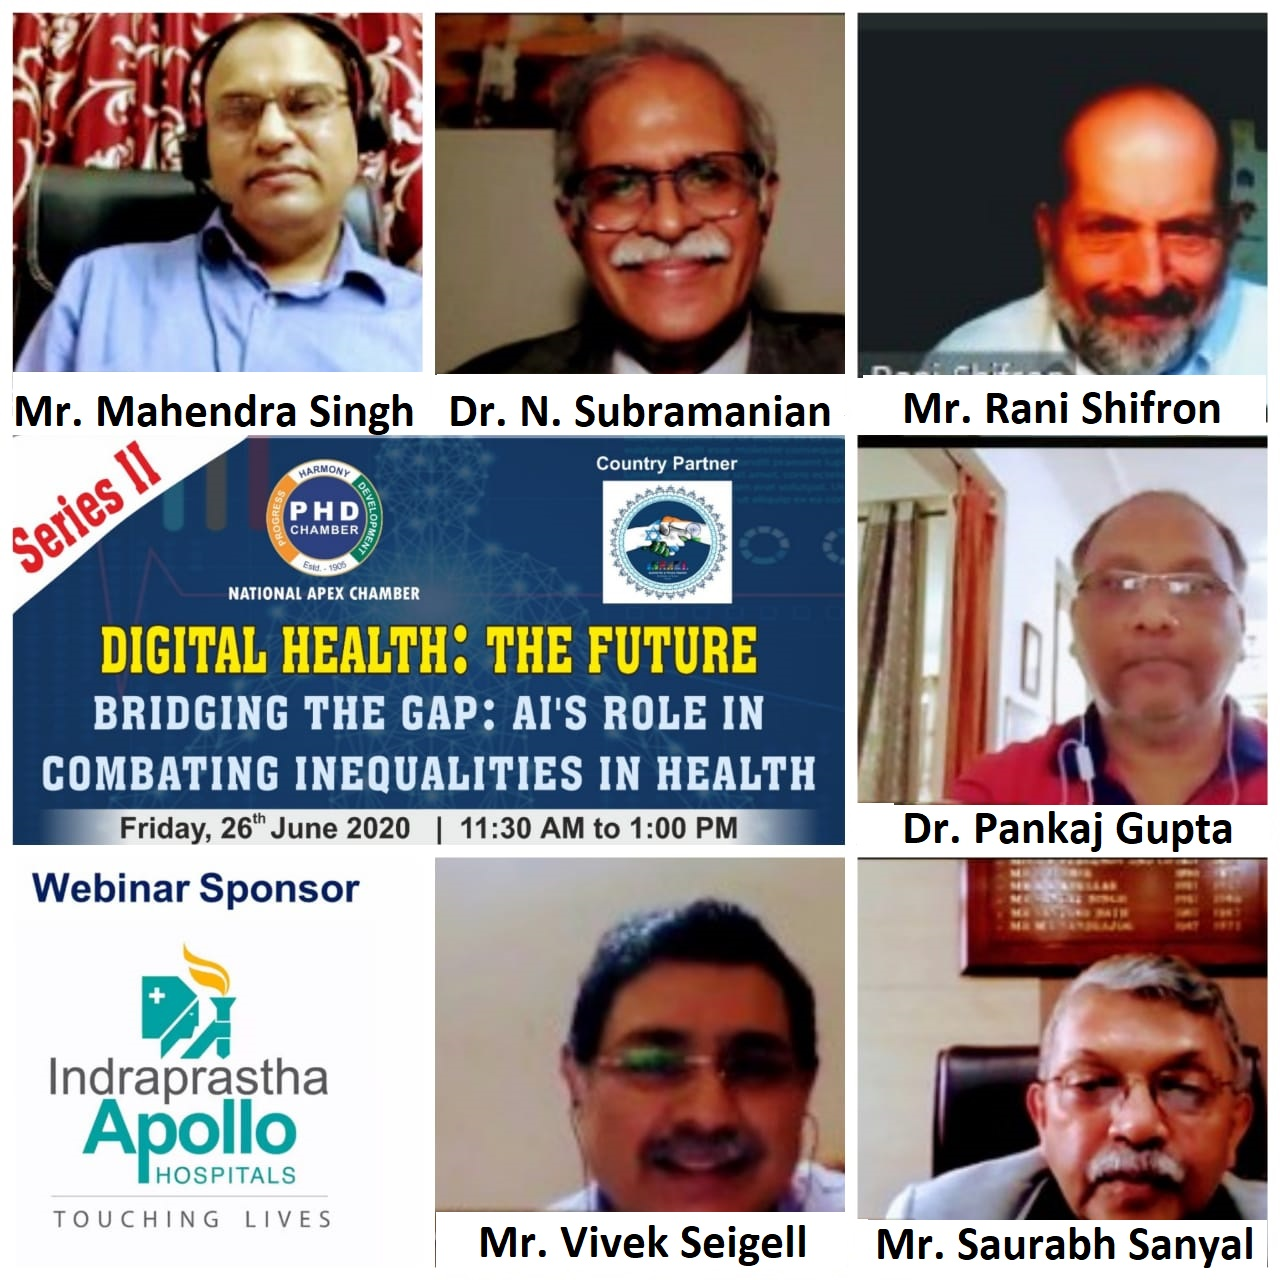 The Future, series II on Bridging the Gap: AI's role in Combating inequalities in Health